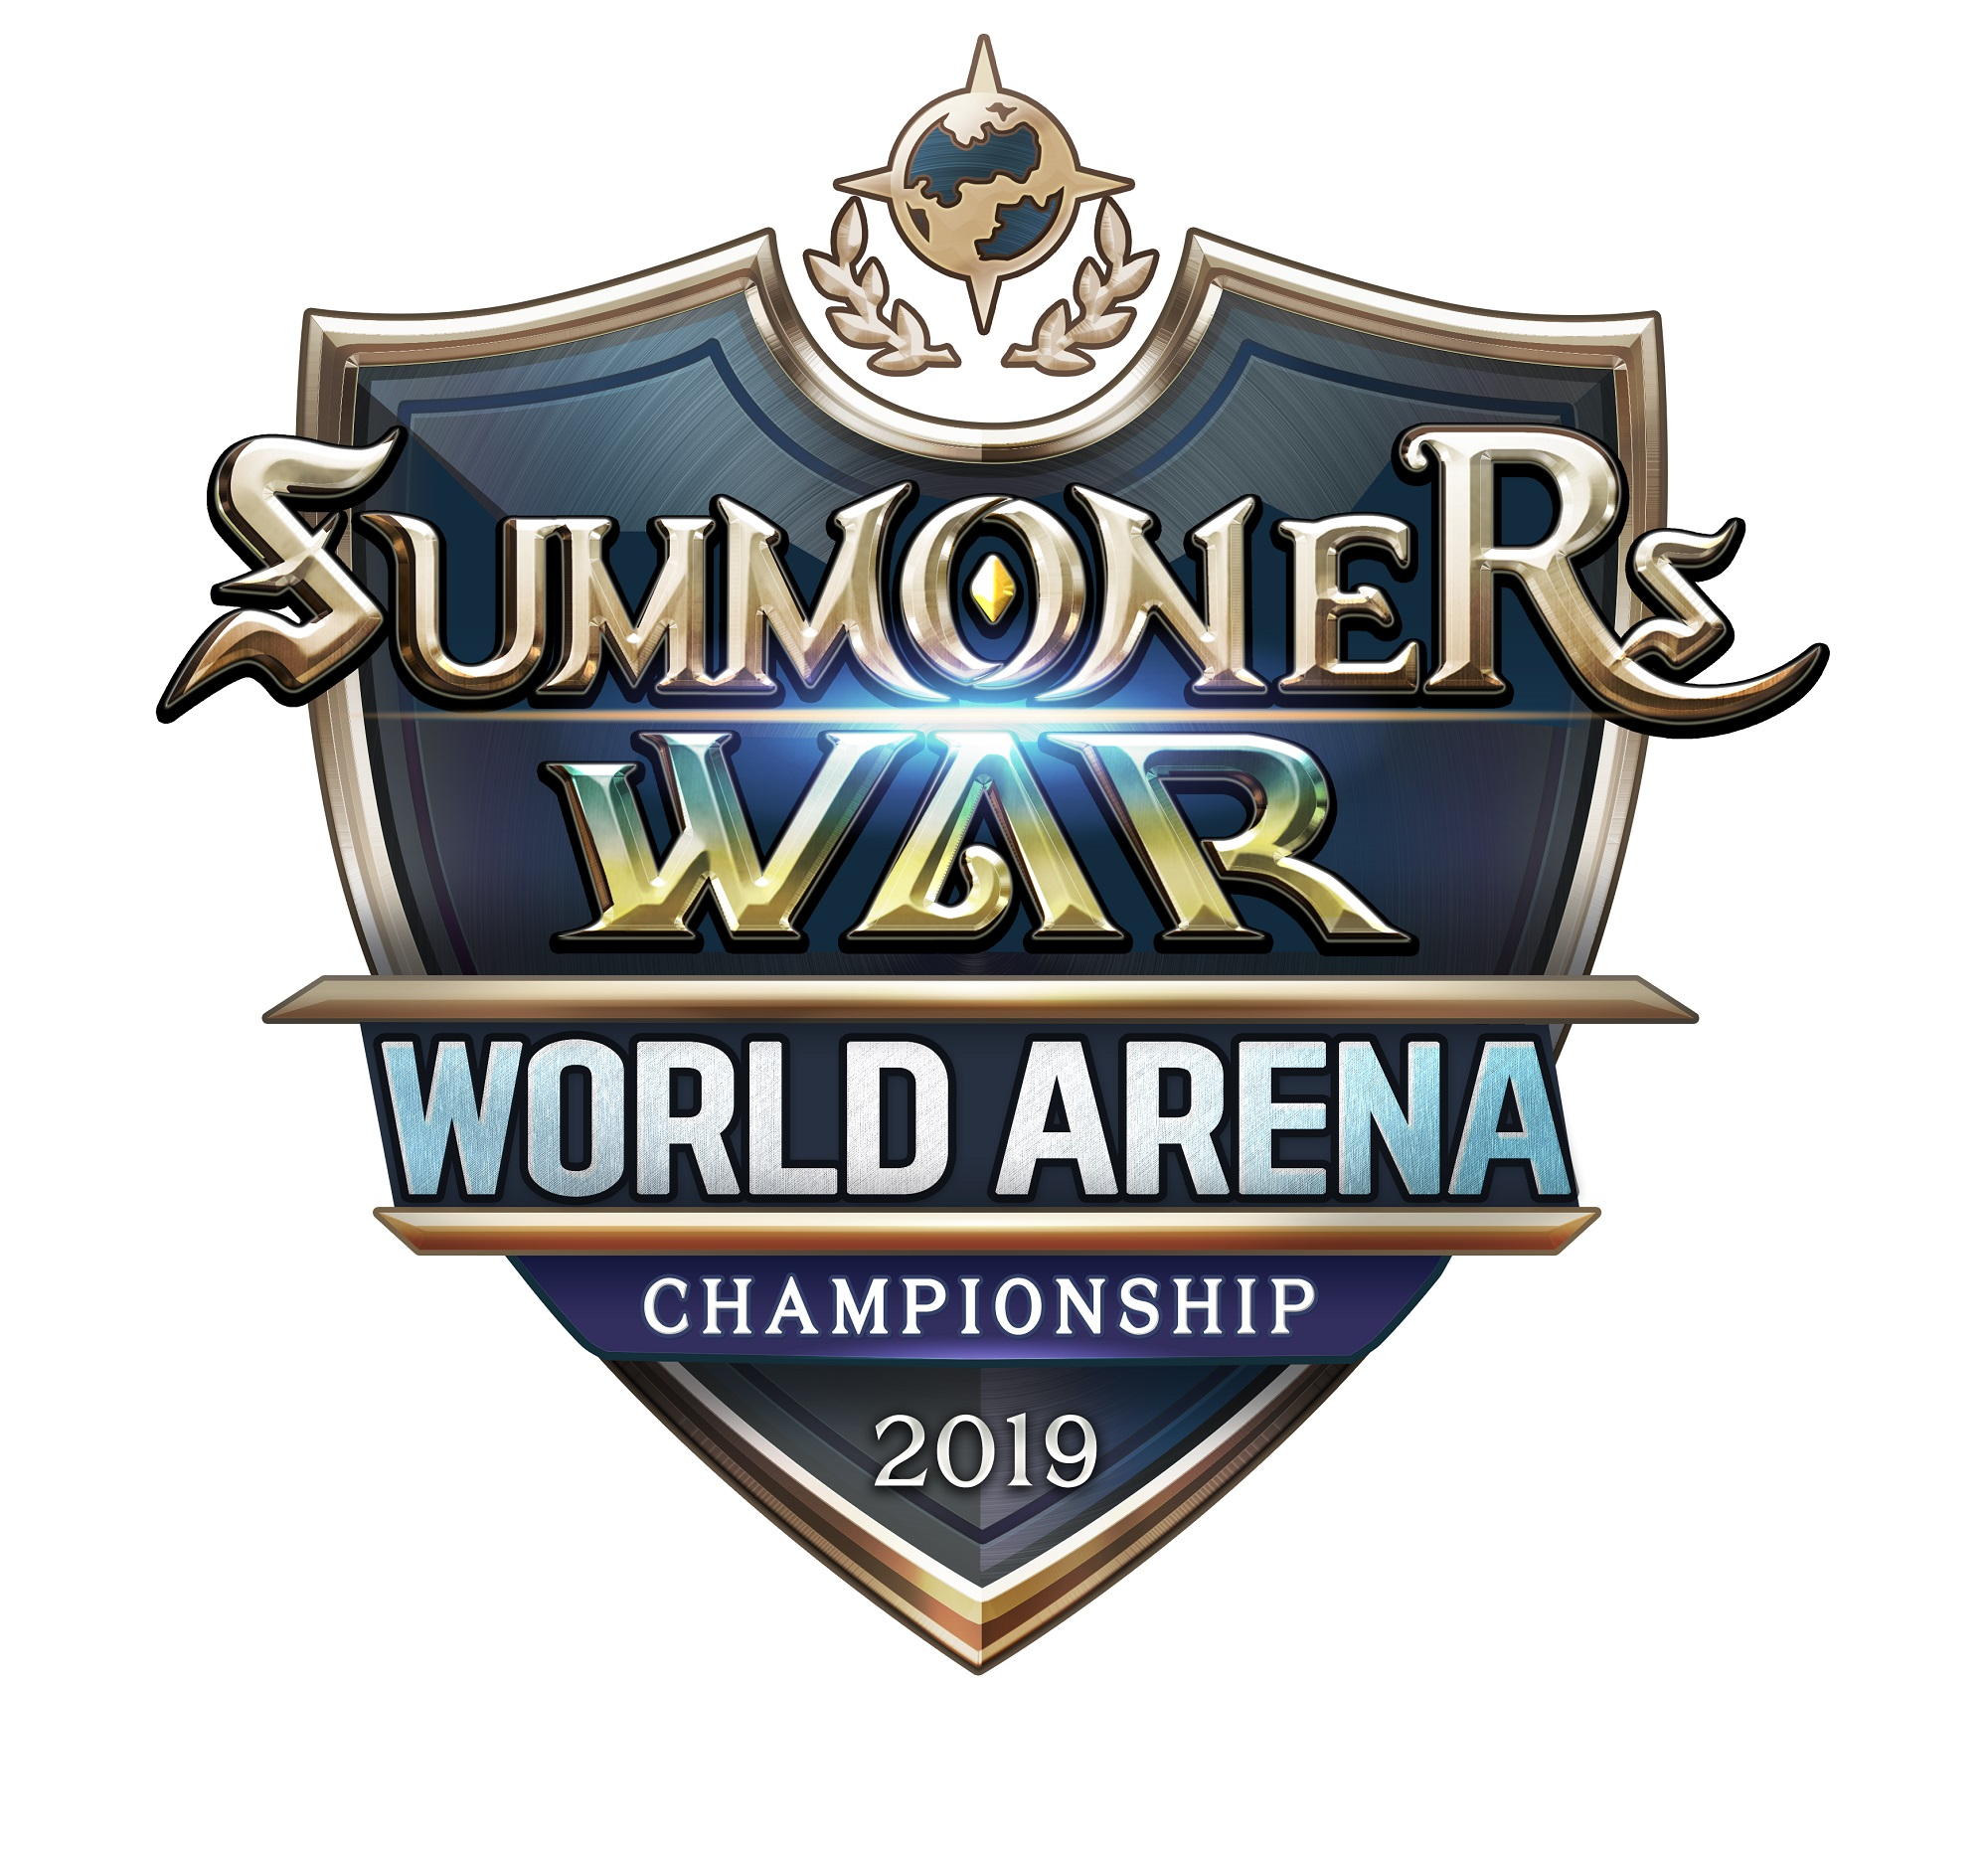 Summoners War World Arena Championship 2019 Comes To Paris